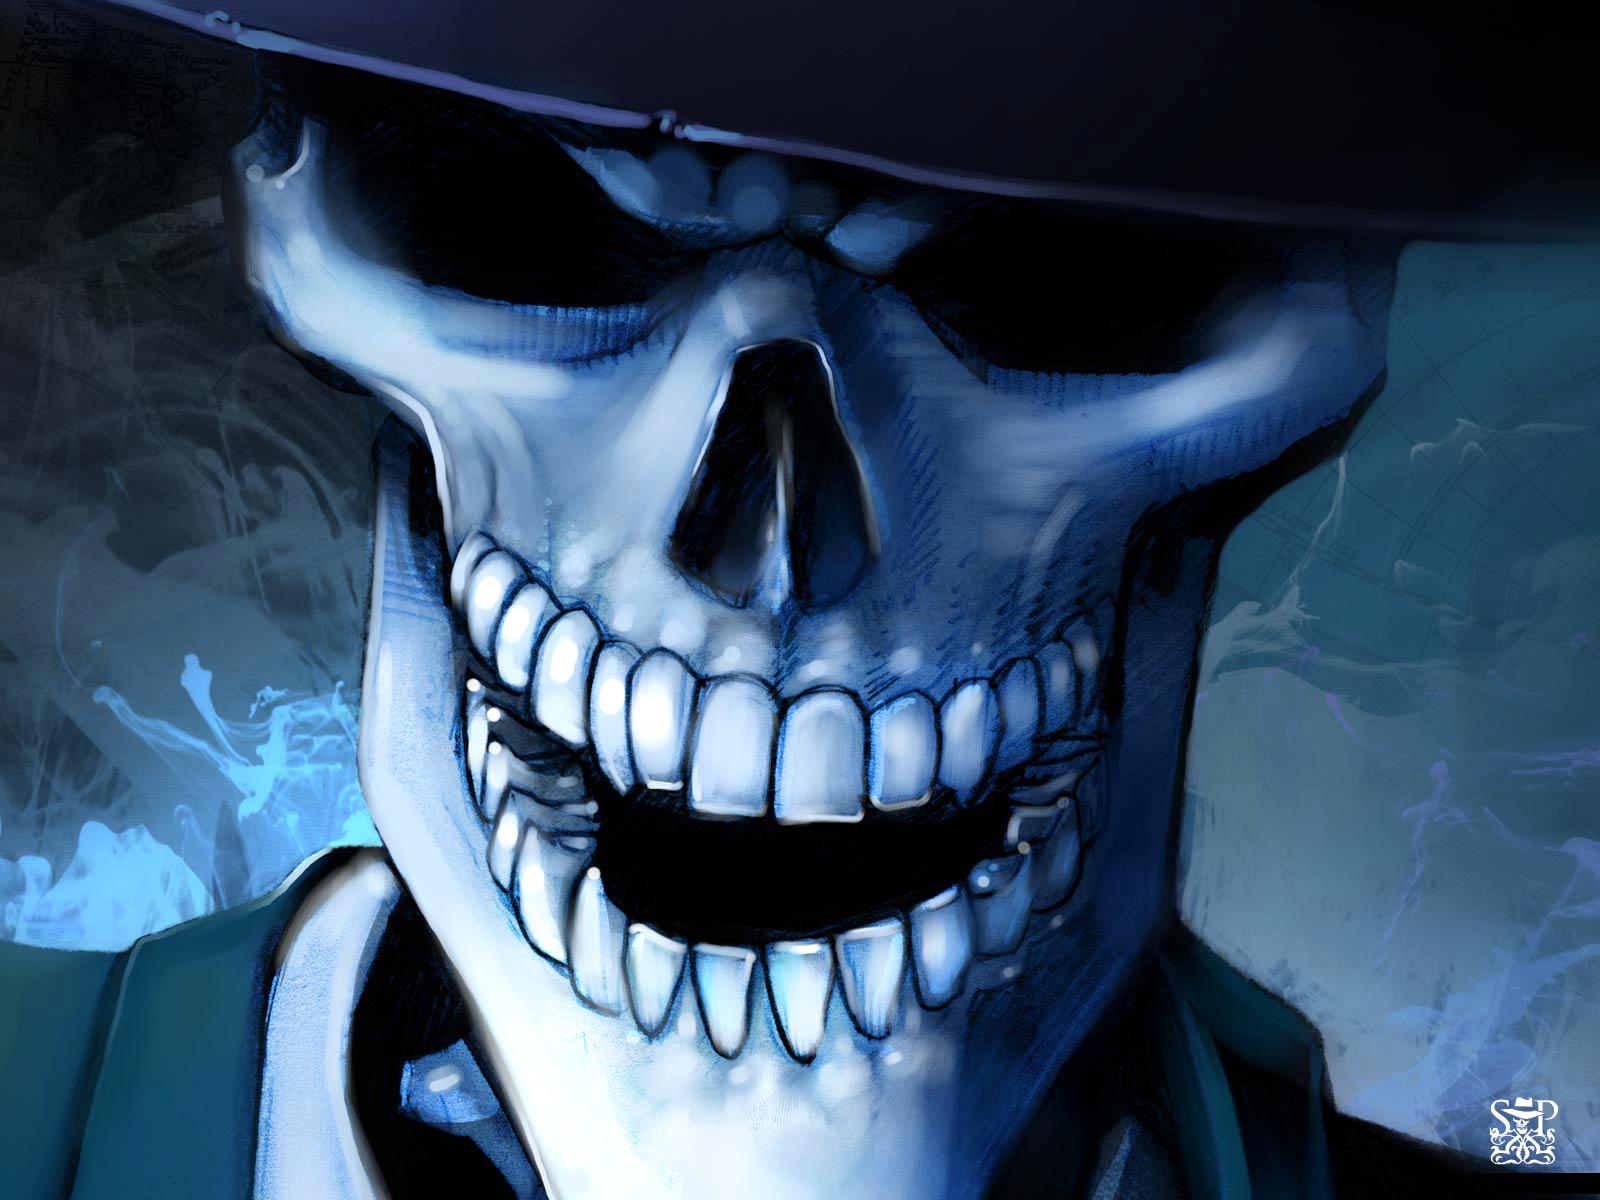 free download hq skull hat horror wallpaper num 22 1600 x 1200 164 Car 1600x1200